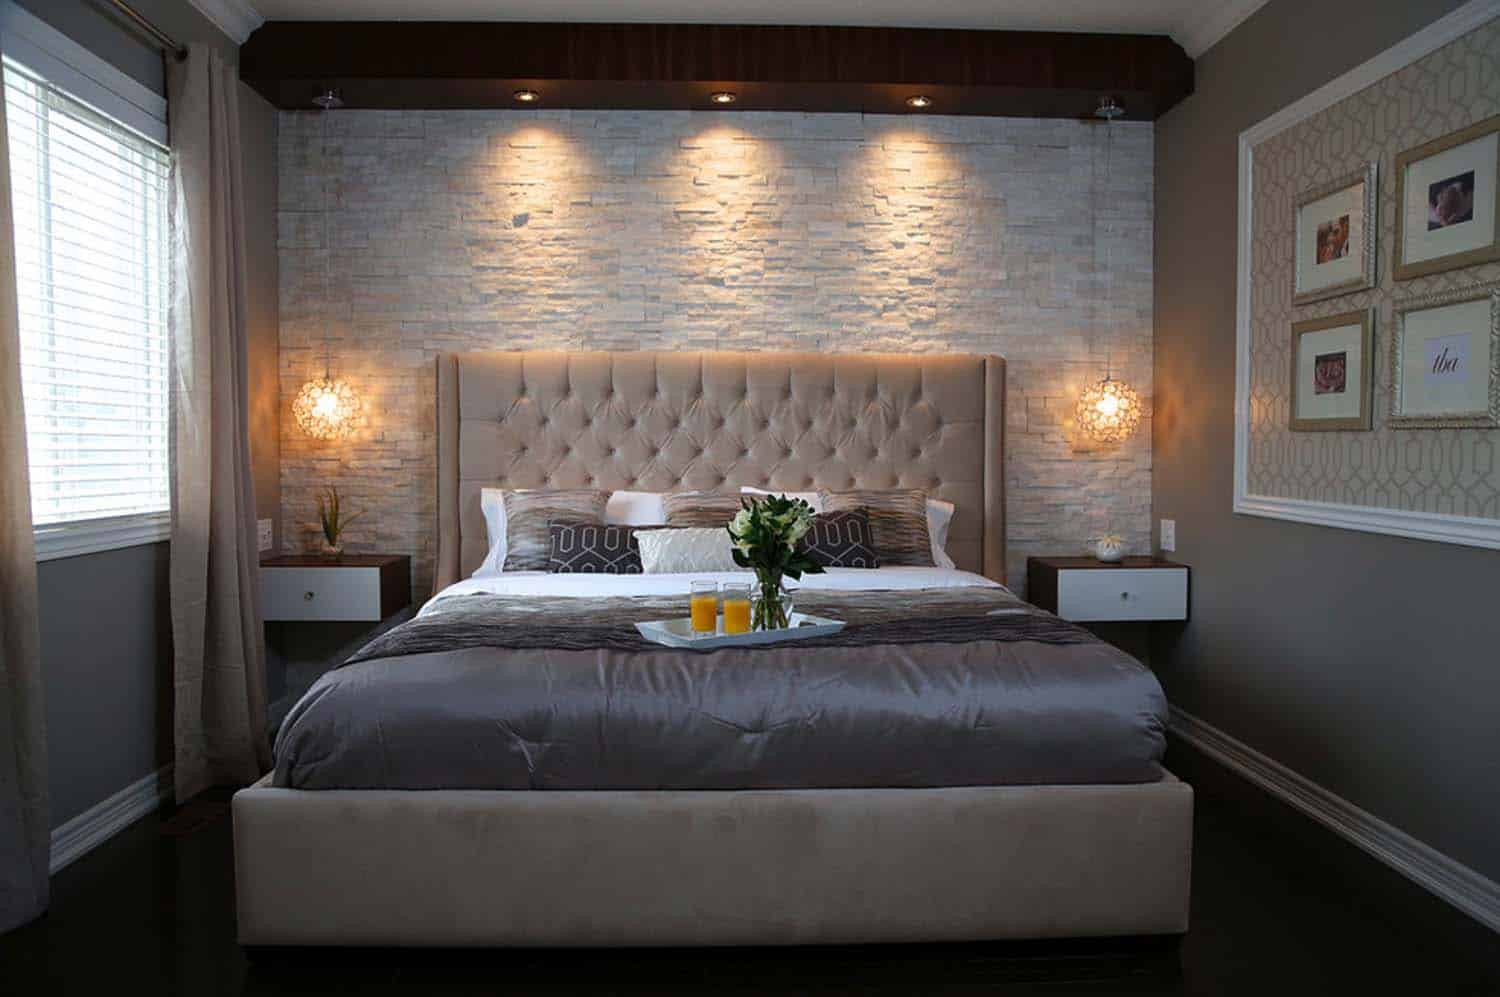 Best ideas about Small Bedroom Design . Save or Pin 30 Small yet amazingly cozy master bedroom retreats Now.